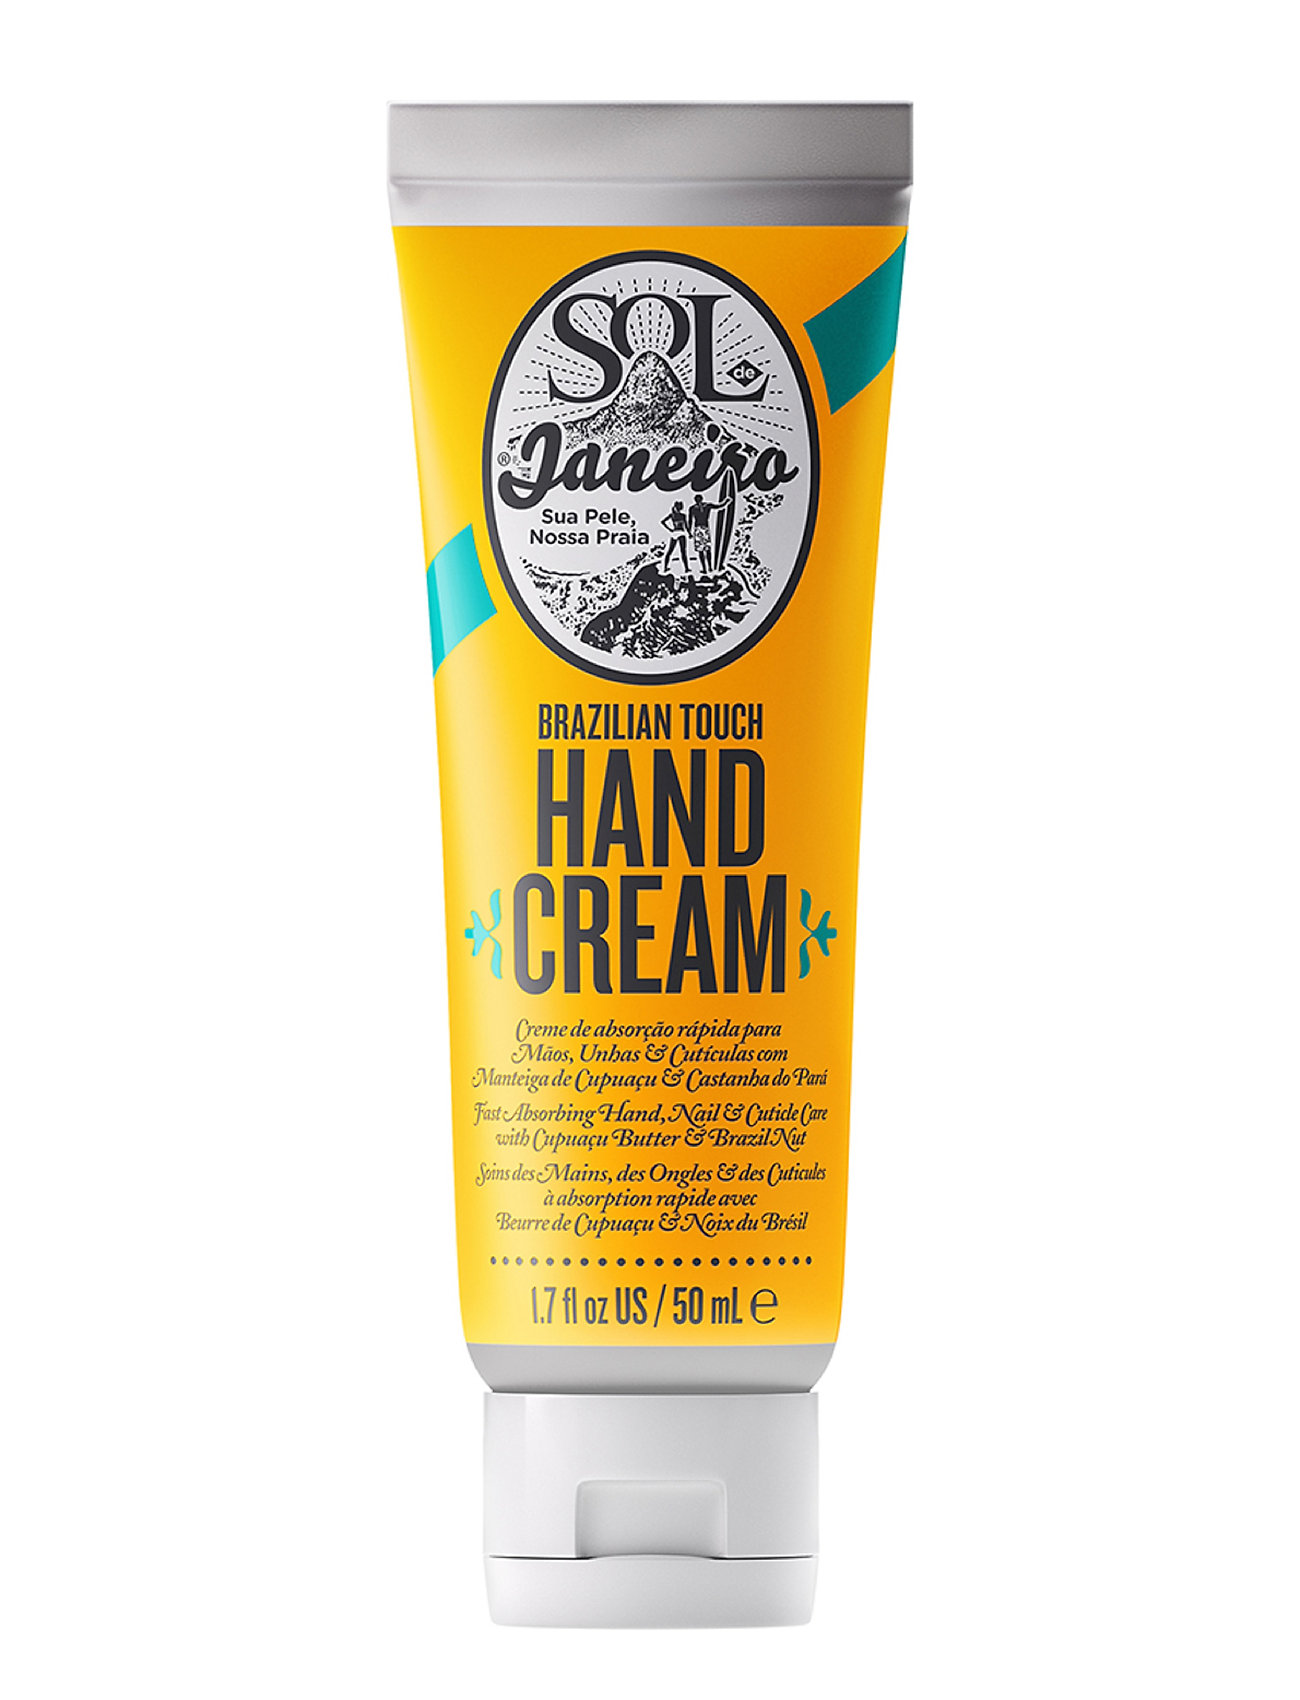 Image of Brazilian Touch Hand Cream Beauty WOMEN Skin Care Body Hand Cream & Foot Cream Nude Sol De Janeiro (3435491121)